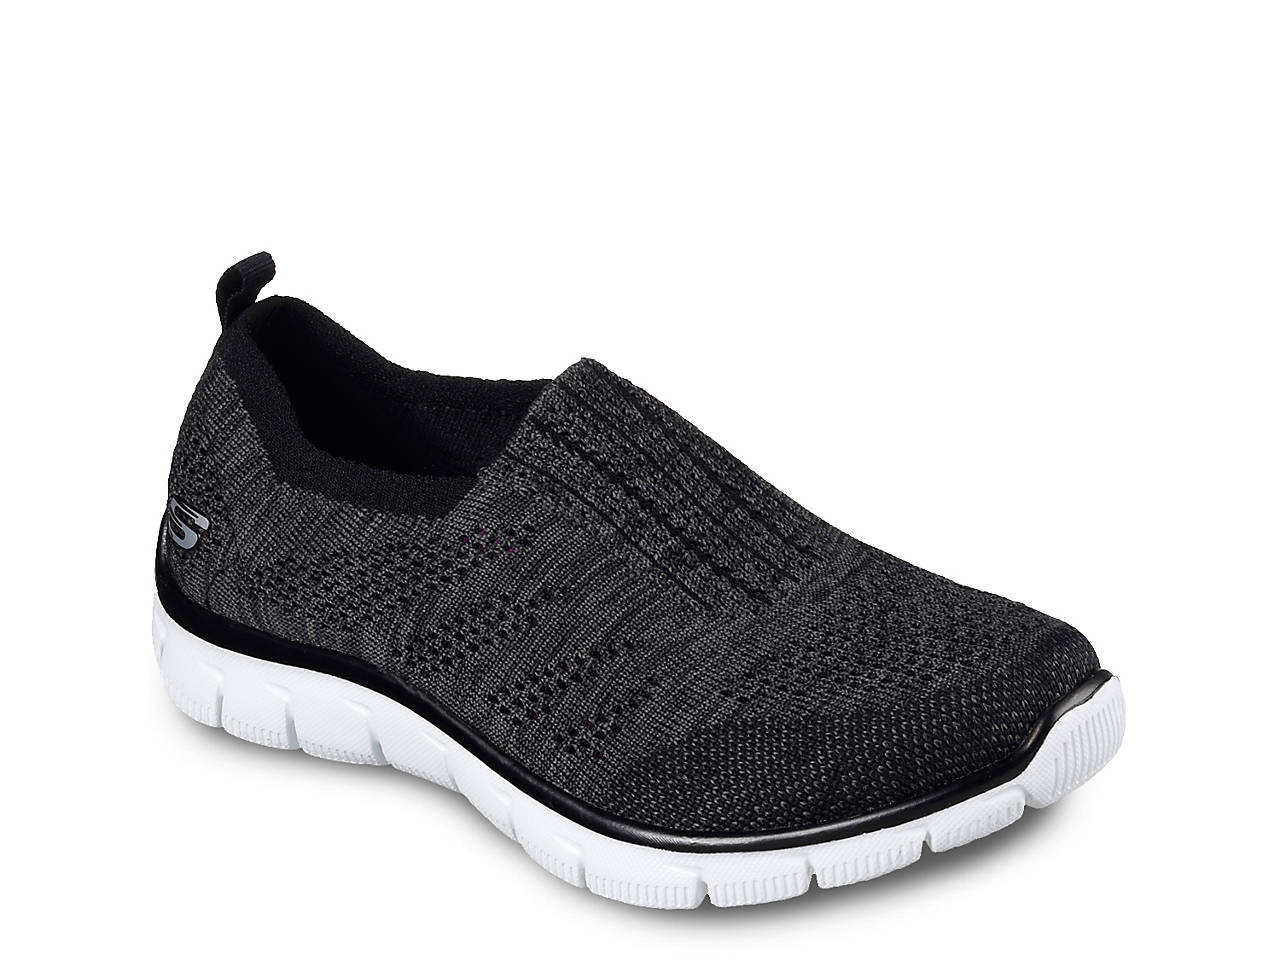 f79ab3af40f3 Skechers Empire Inside Look Slip-On Sneaker - Women s Women s Shoes ...